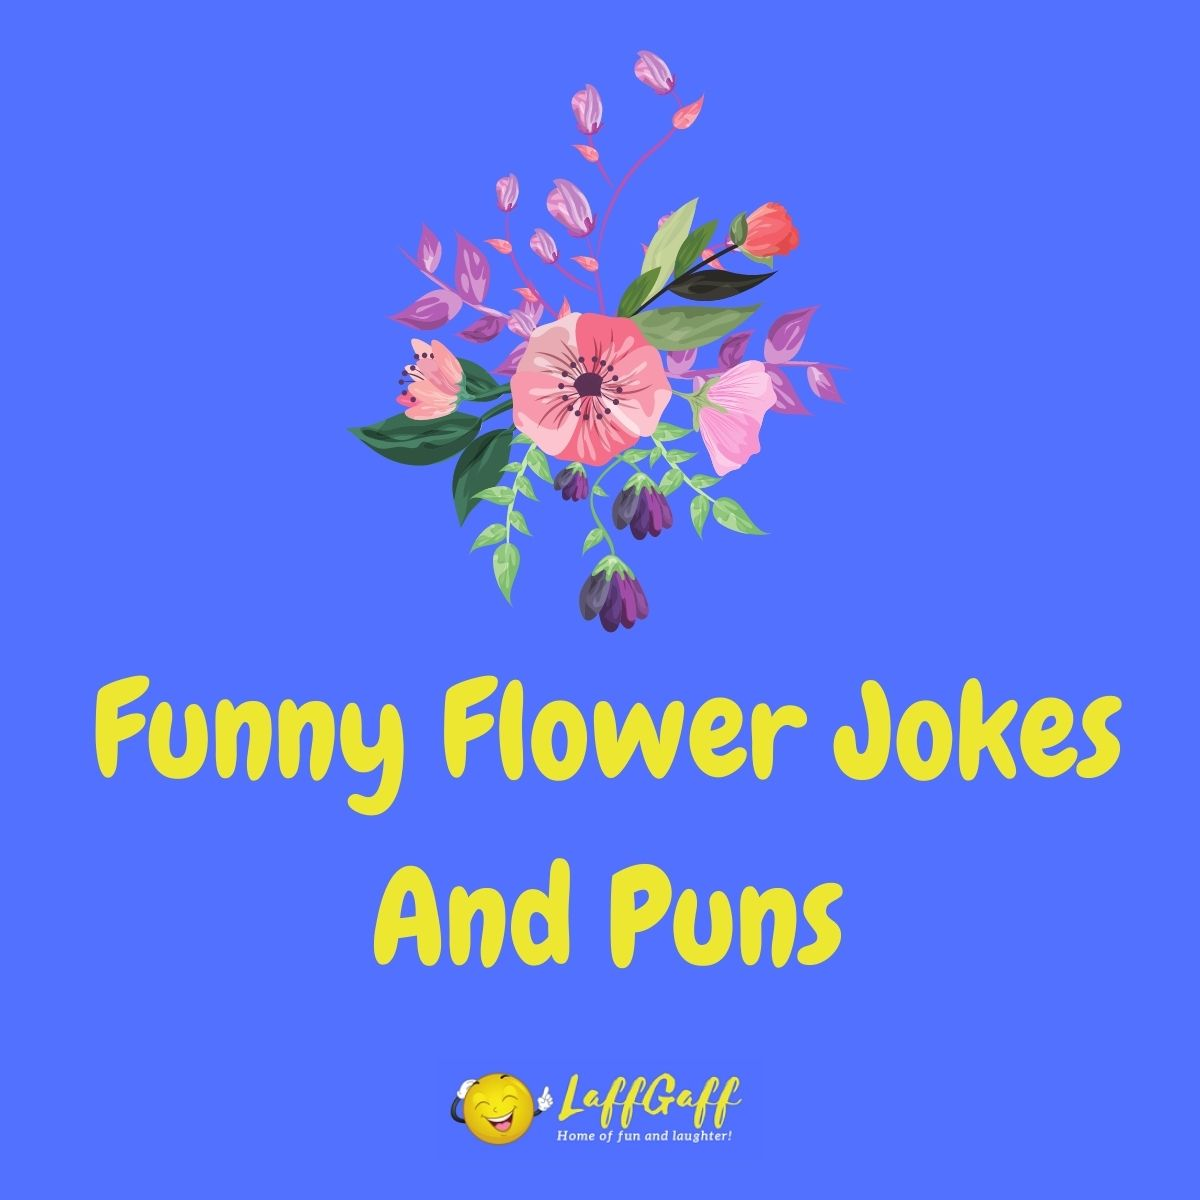 Featured image for a page of funny flower jokes and puns.